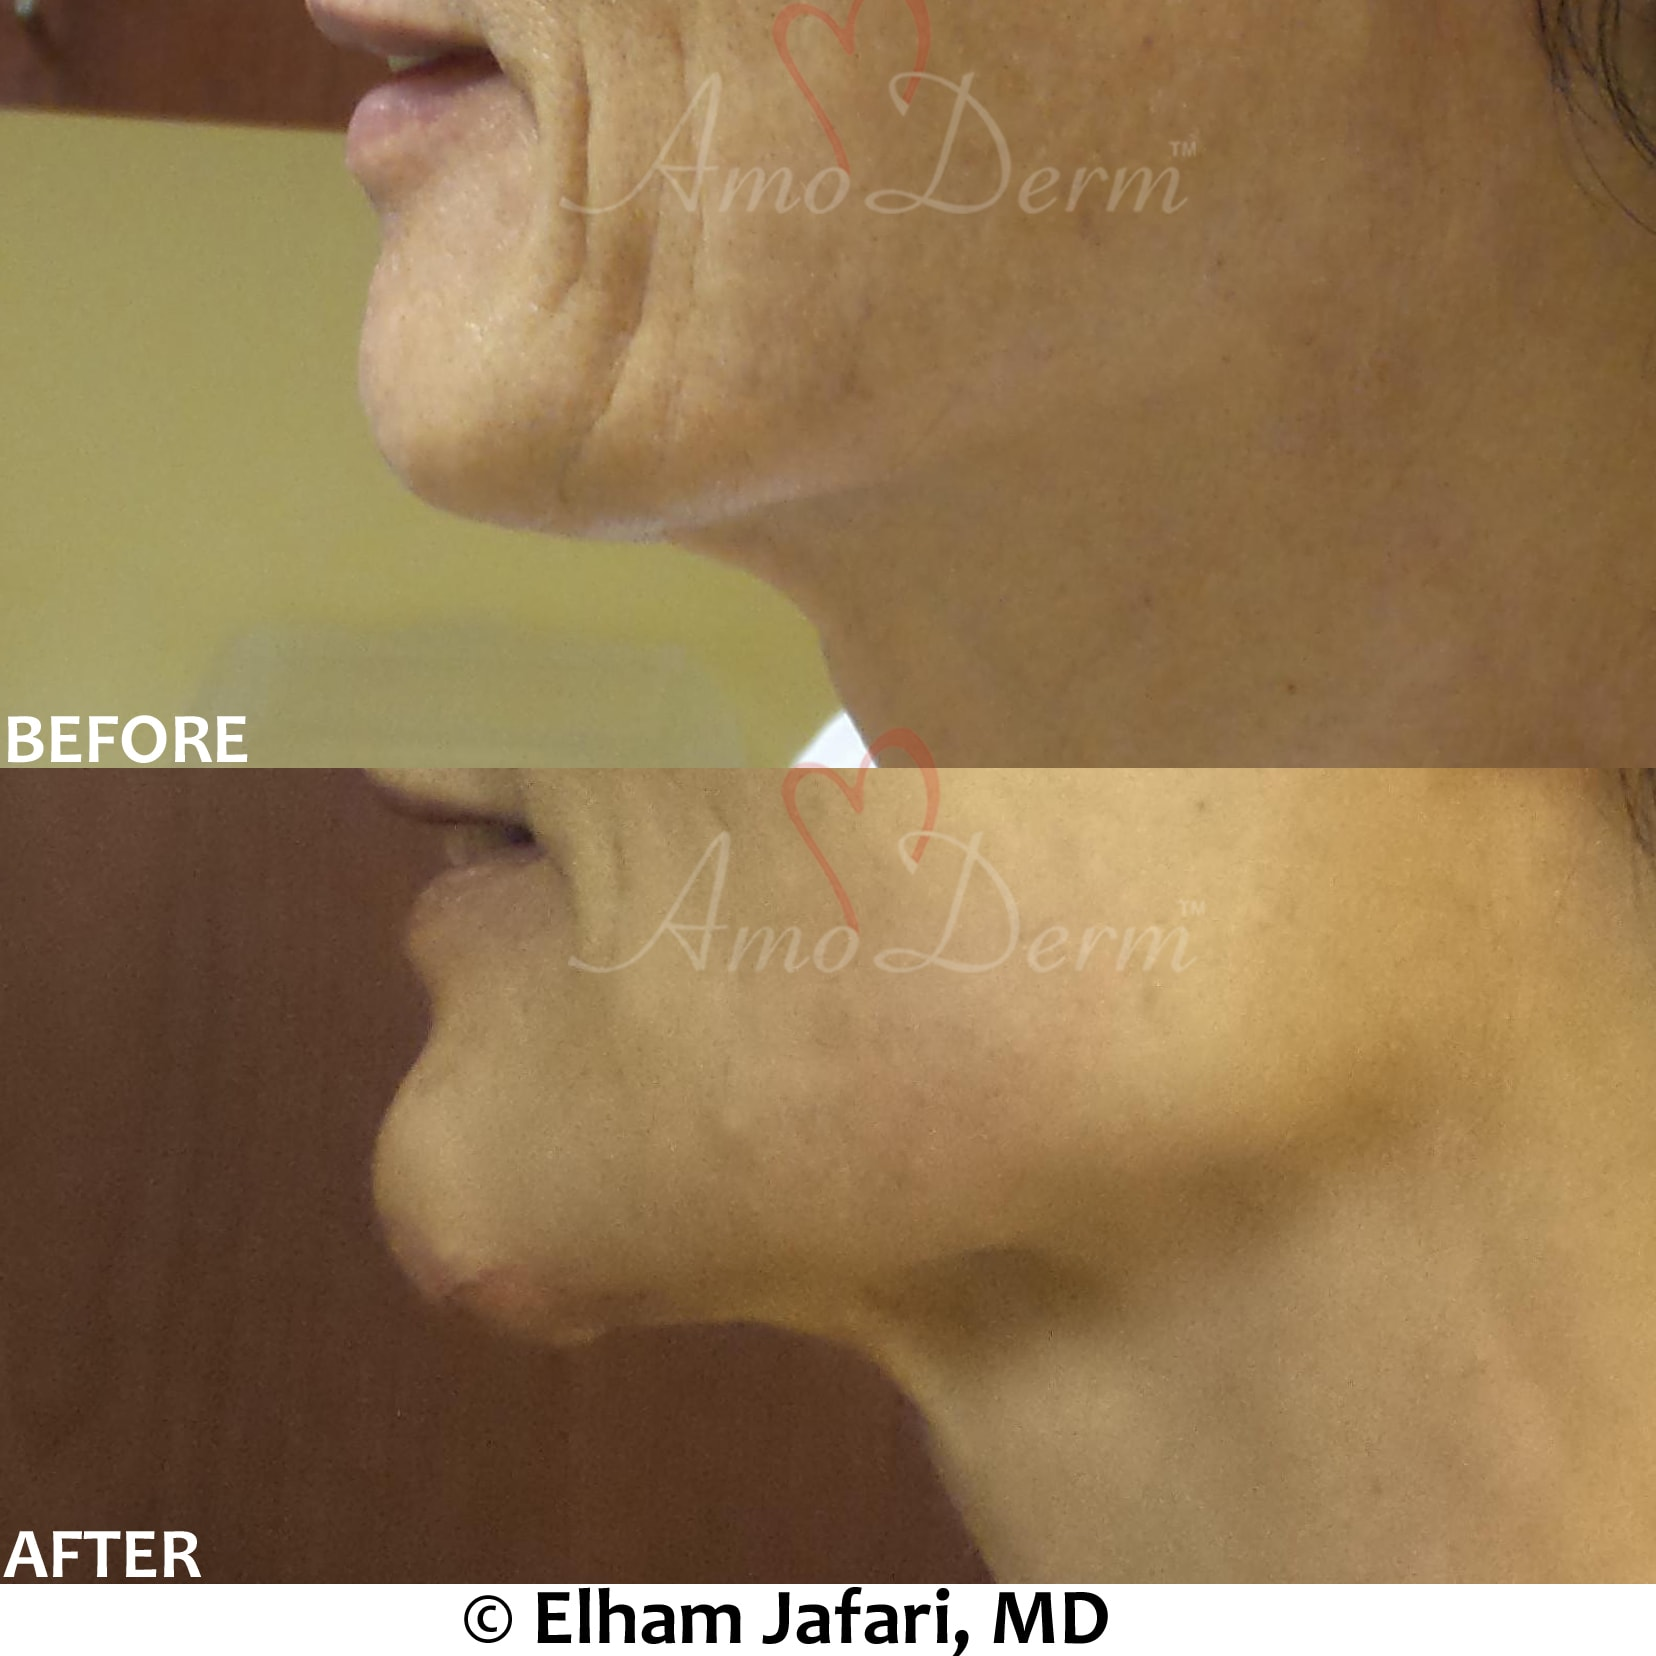 Chin augmentation and enhancement with filler injection (Voluma, Bellafill, Radiesse)